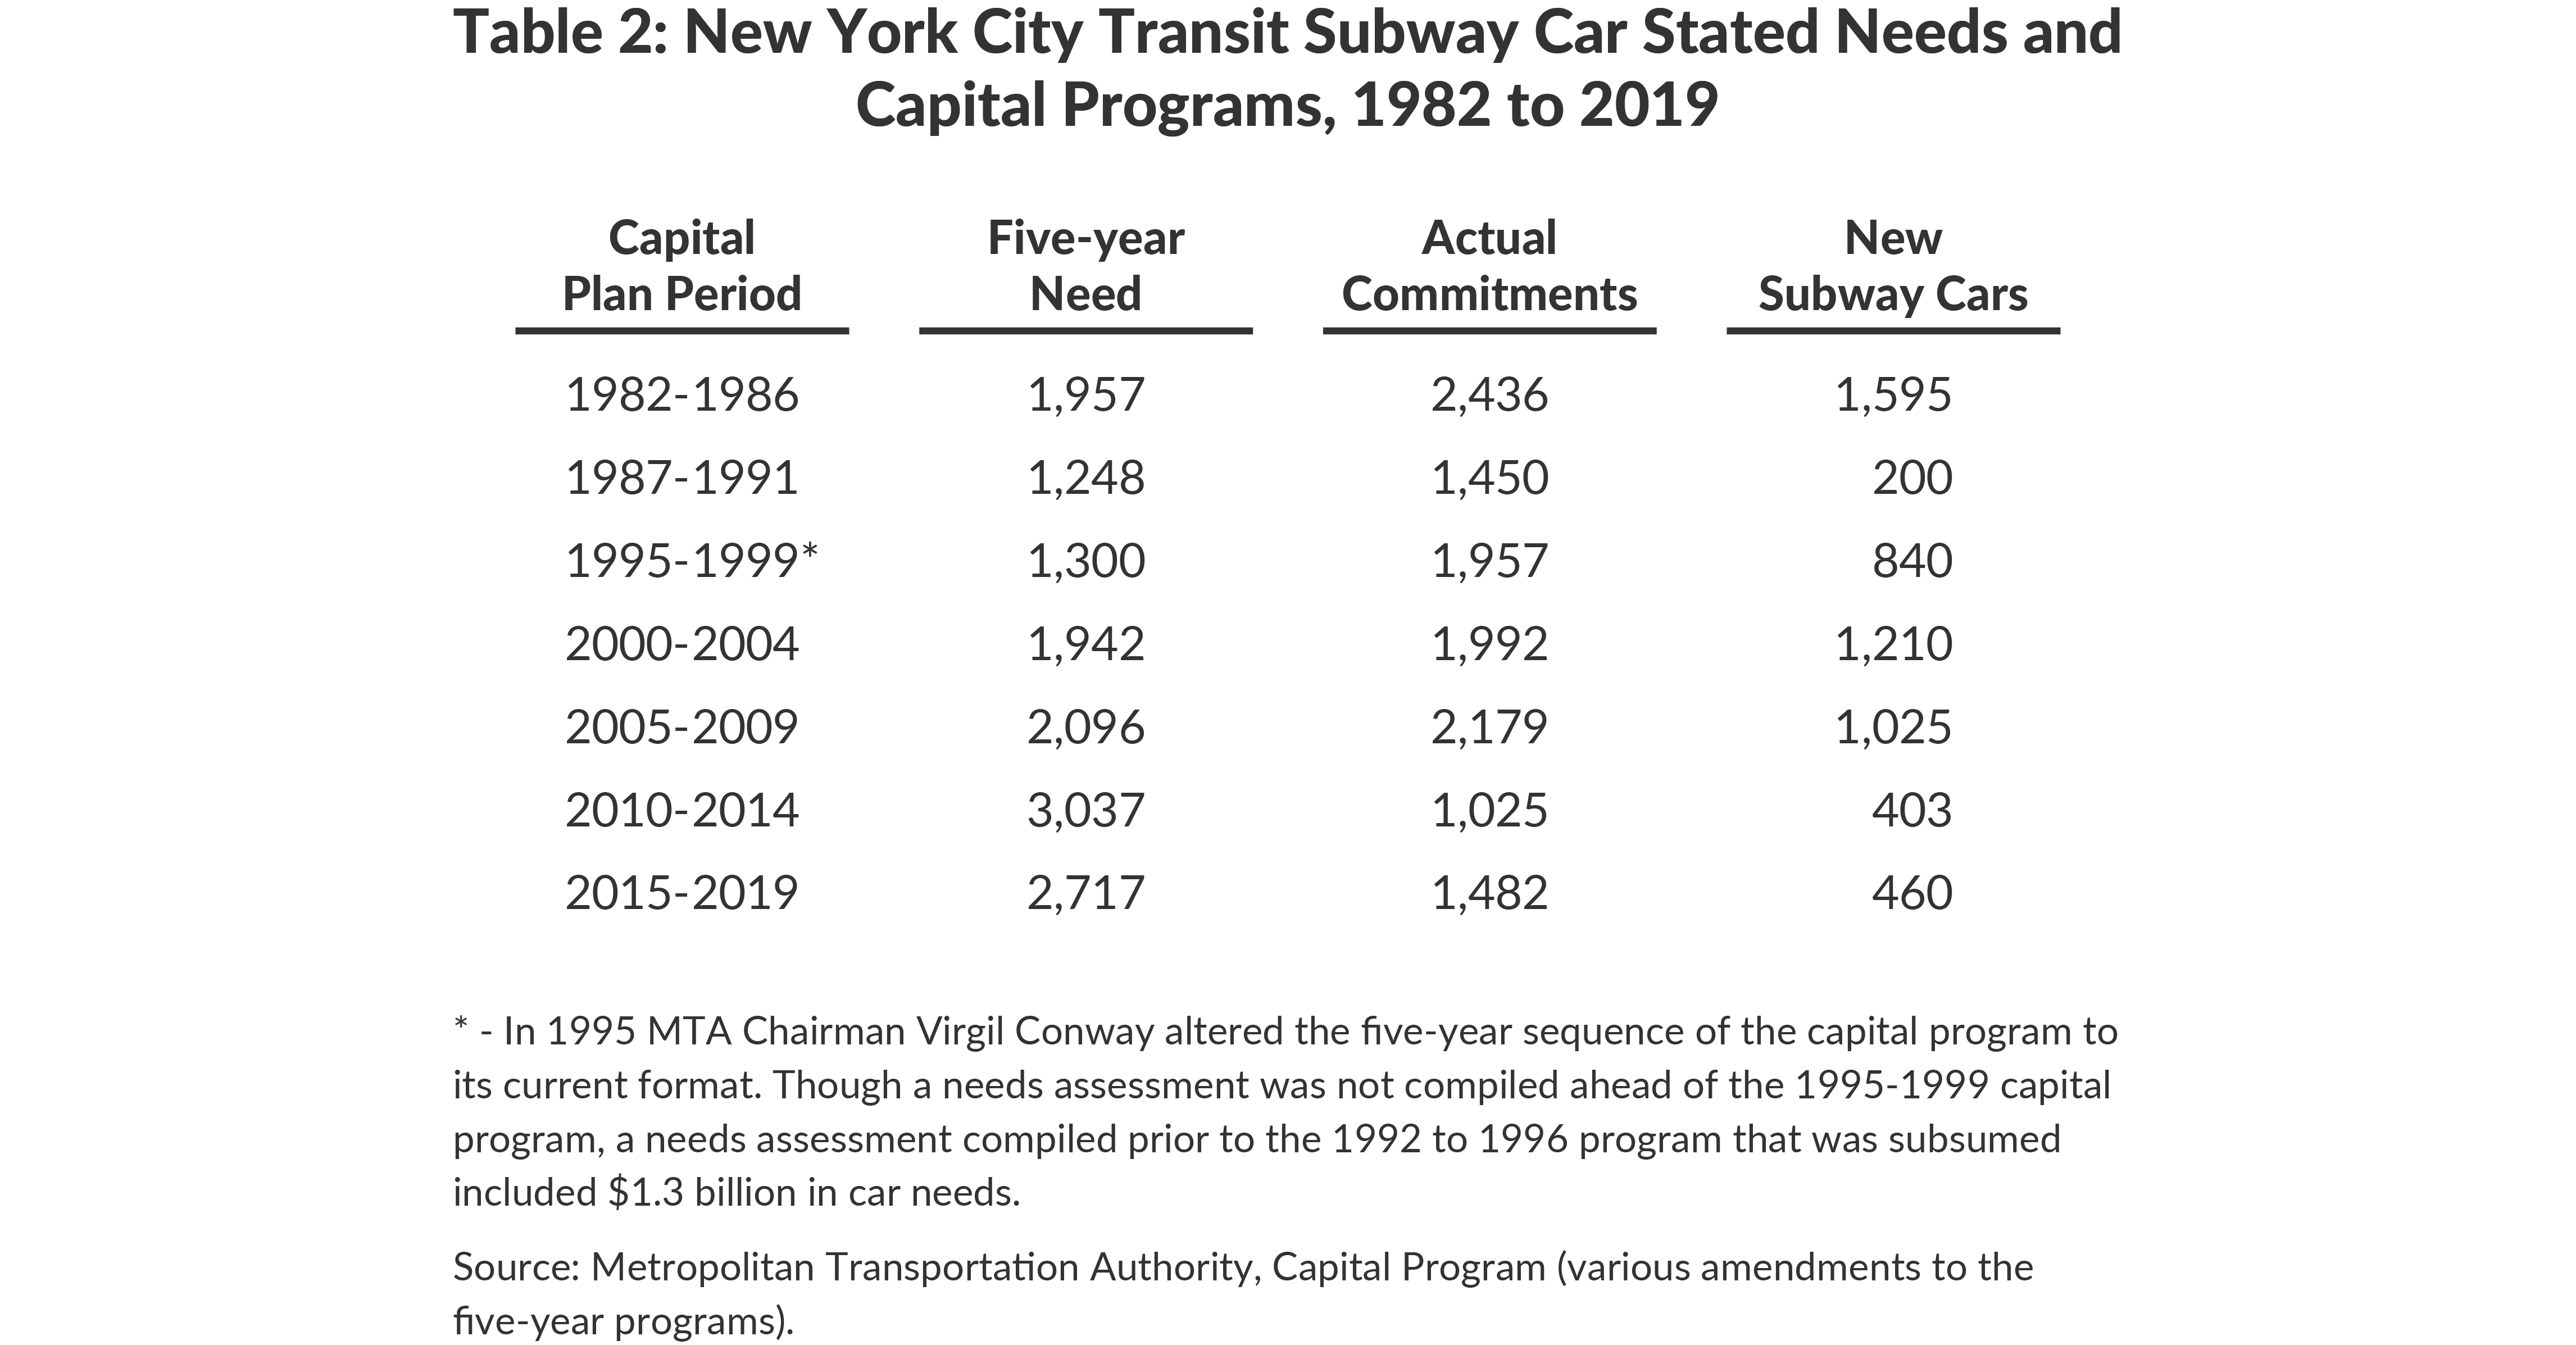 Table 2: New York City Transit Subway Car Stated Needs and Capital Programs, 1982 to 2019